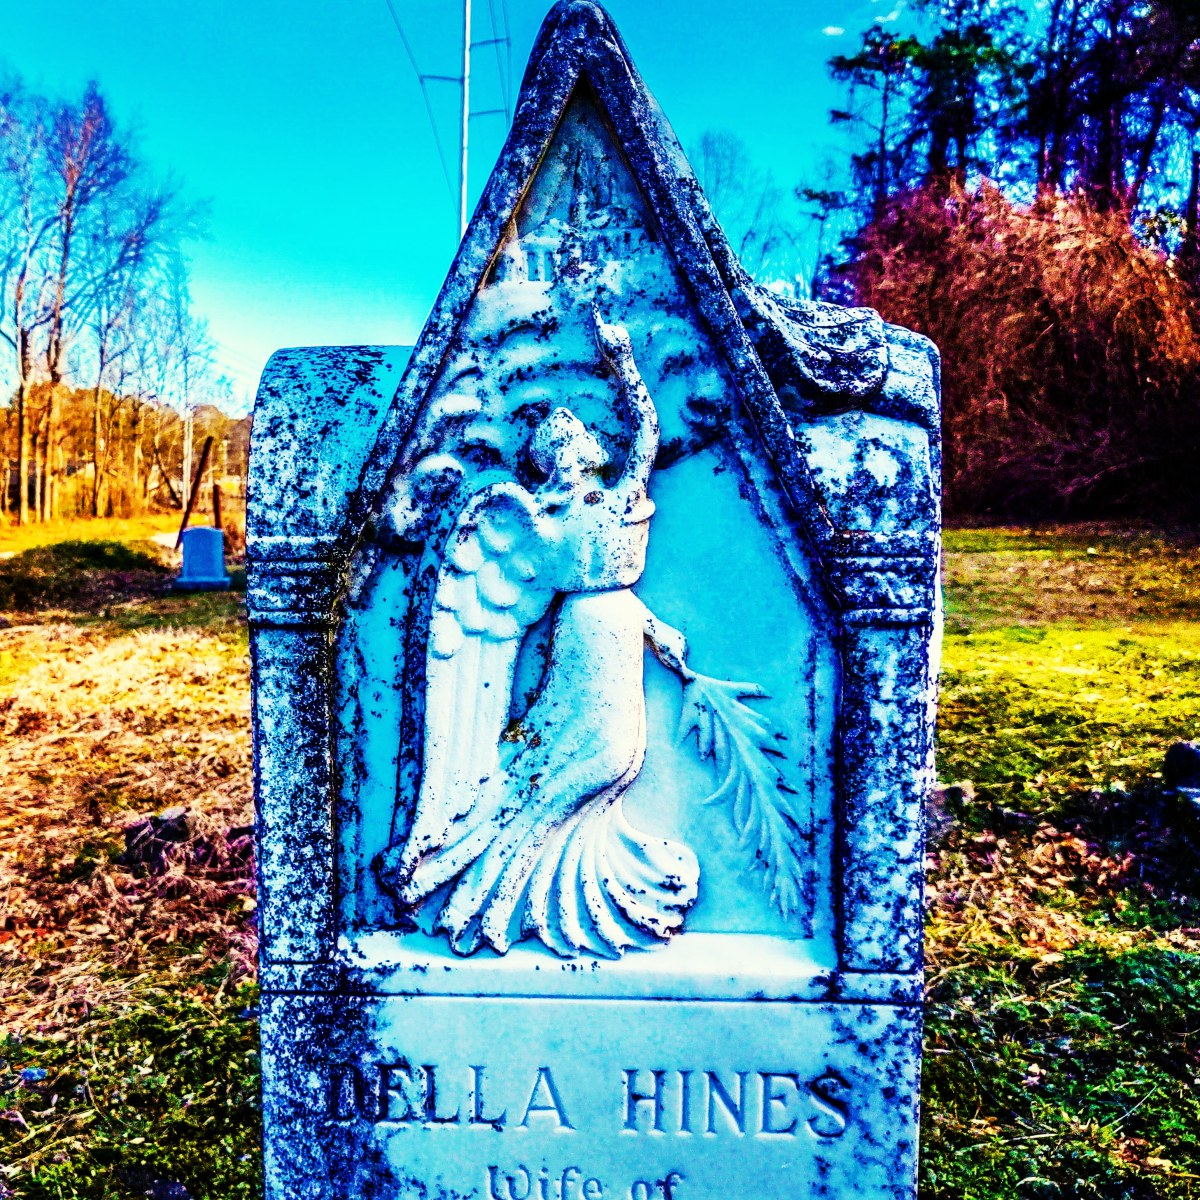 Wilson County, North Carolina: The gravestone of Mrs. Della Hines Barnes